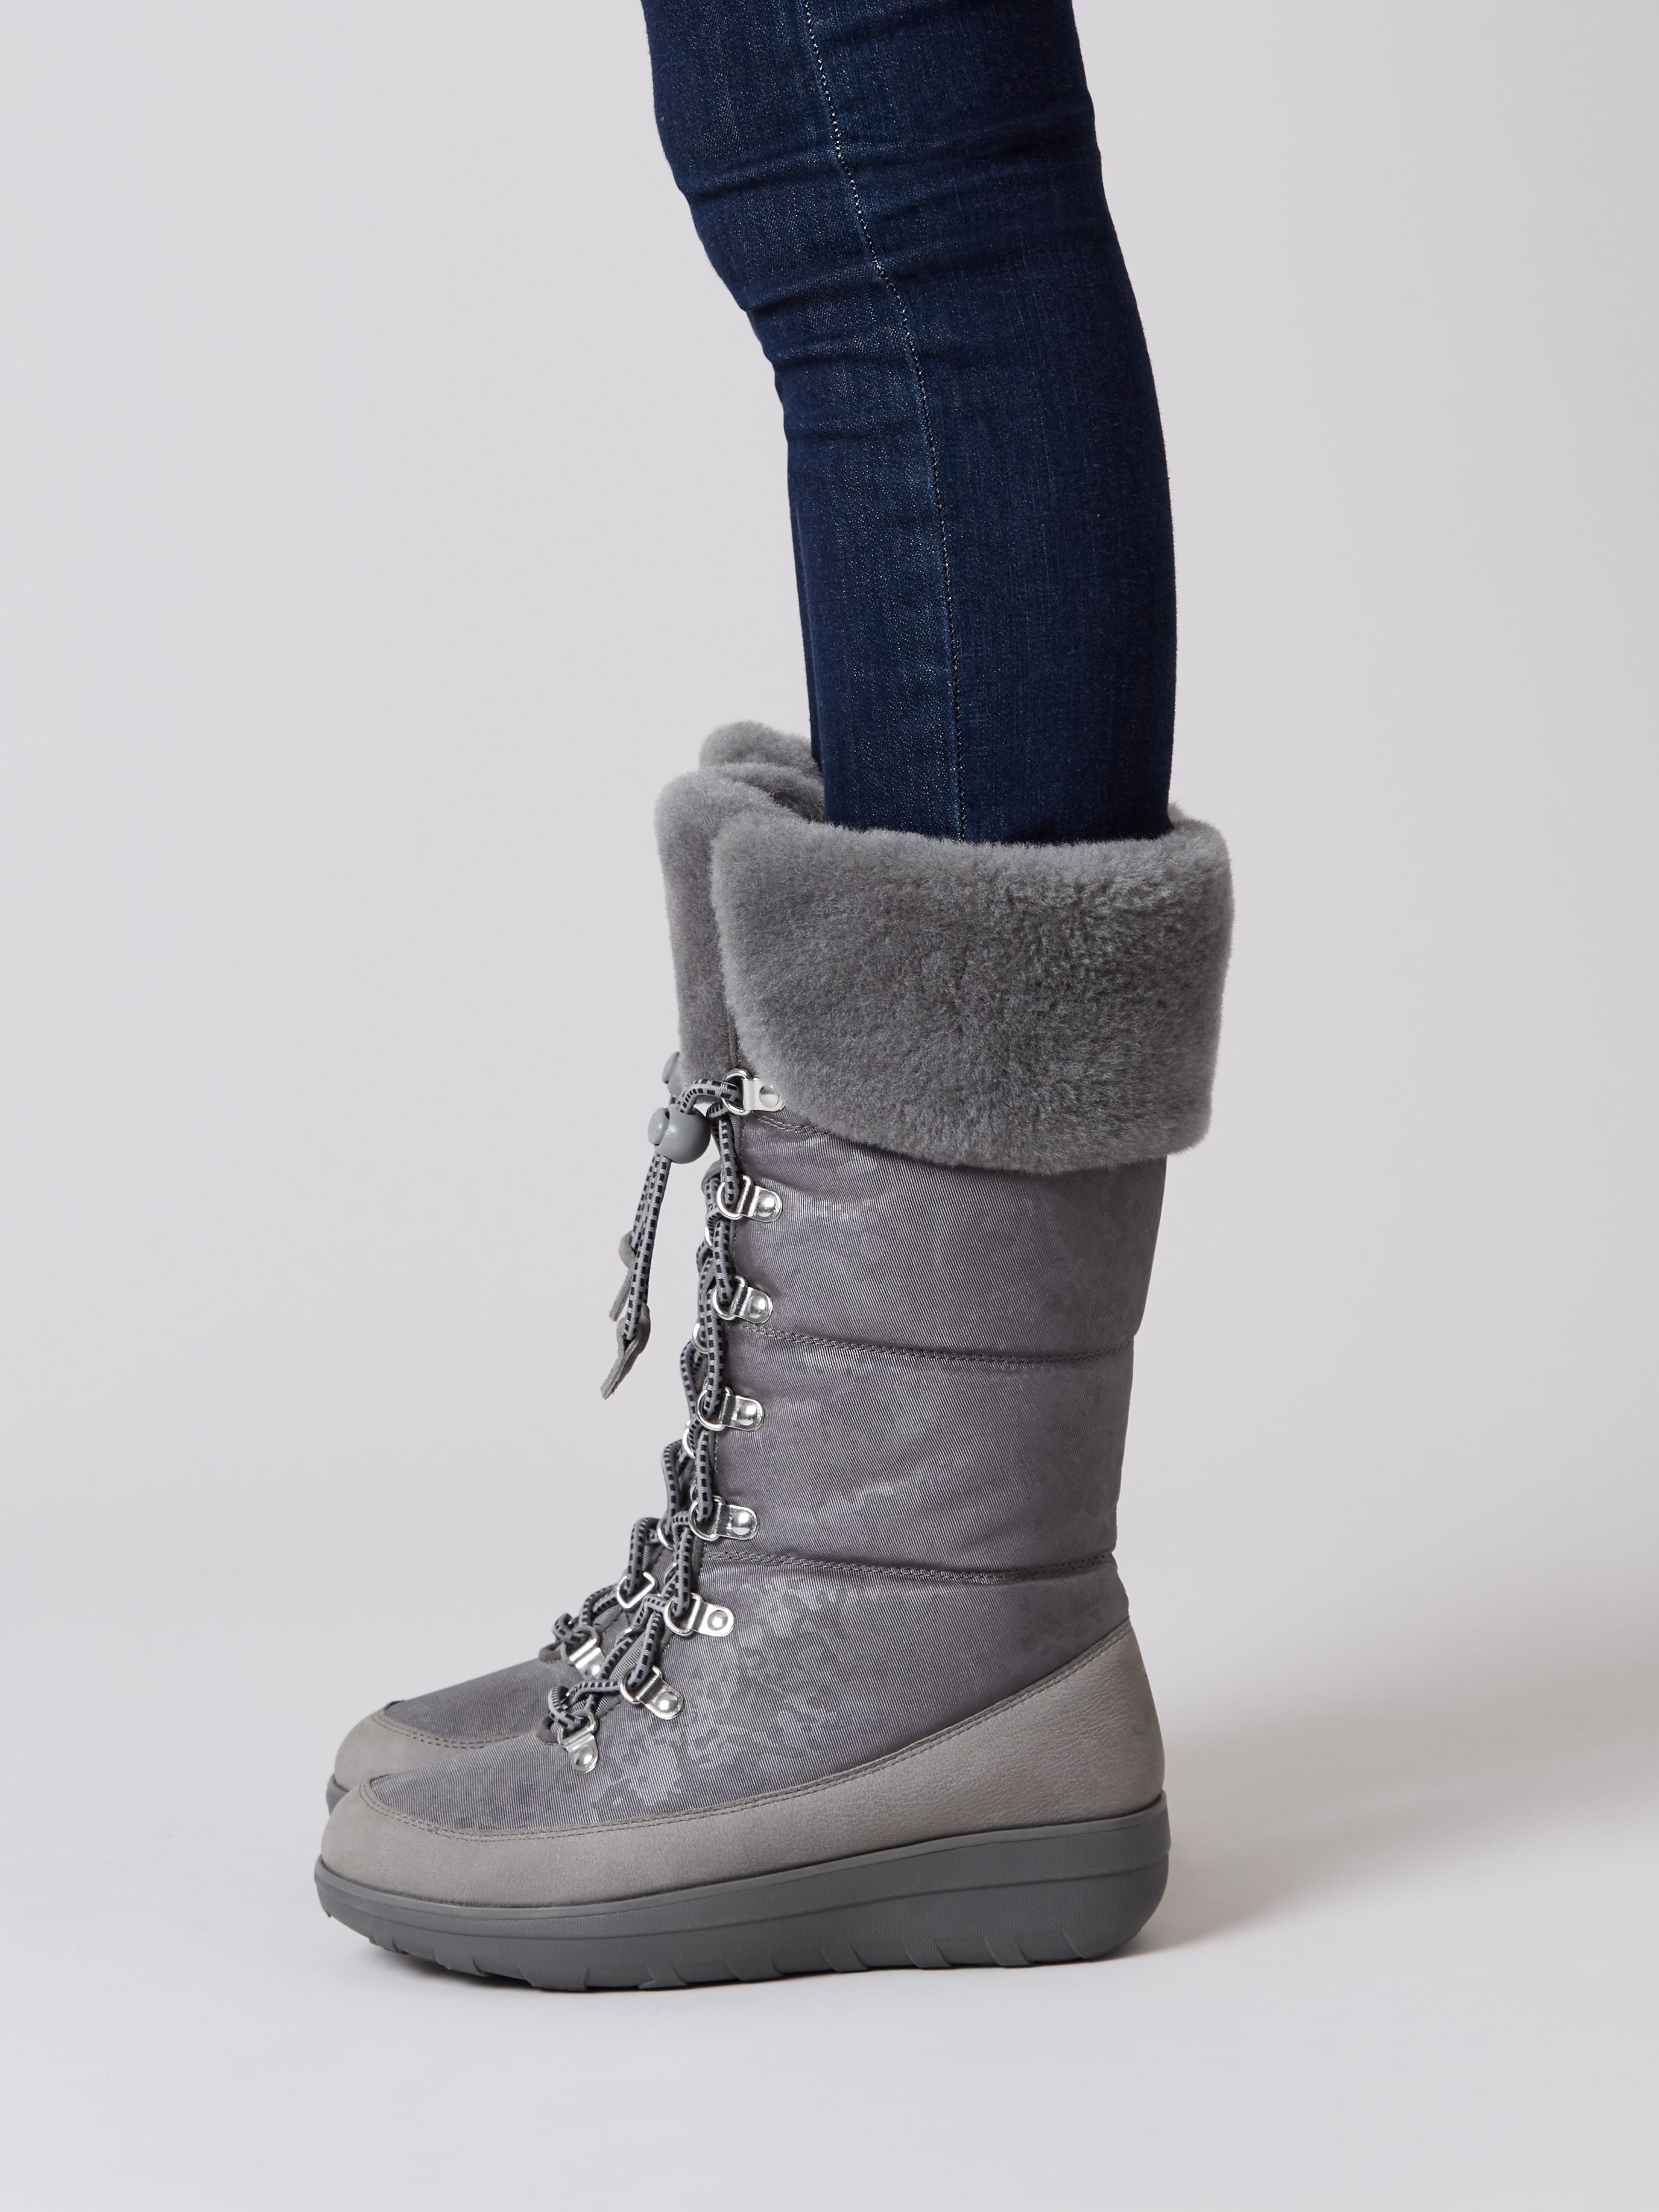 Snow Boots | Womens boots uk